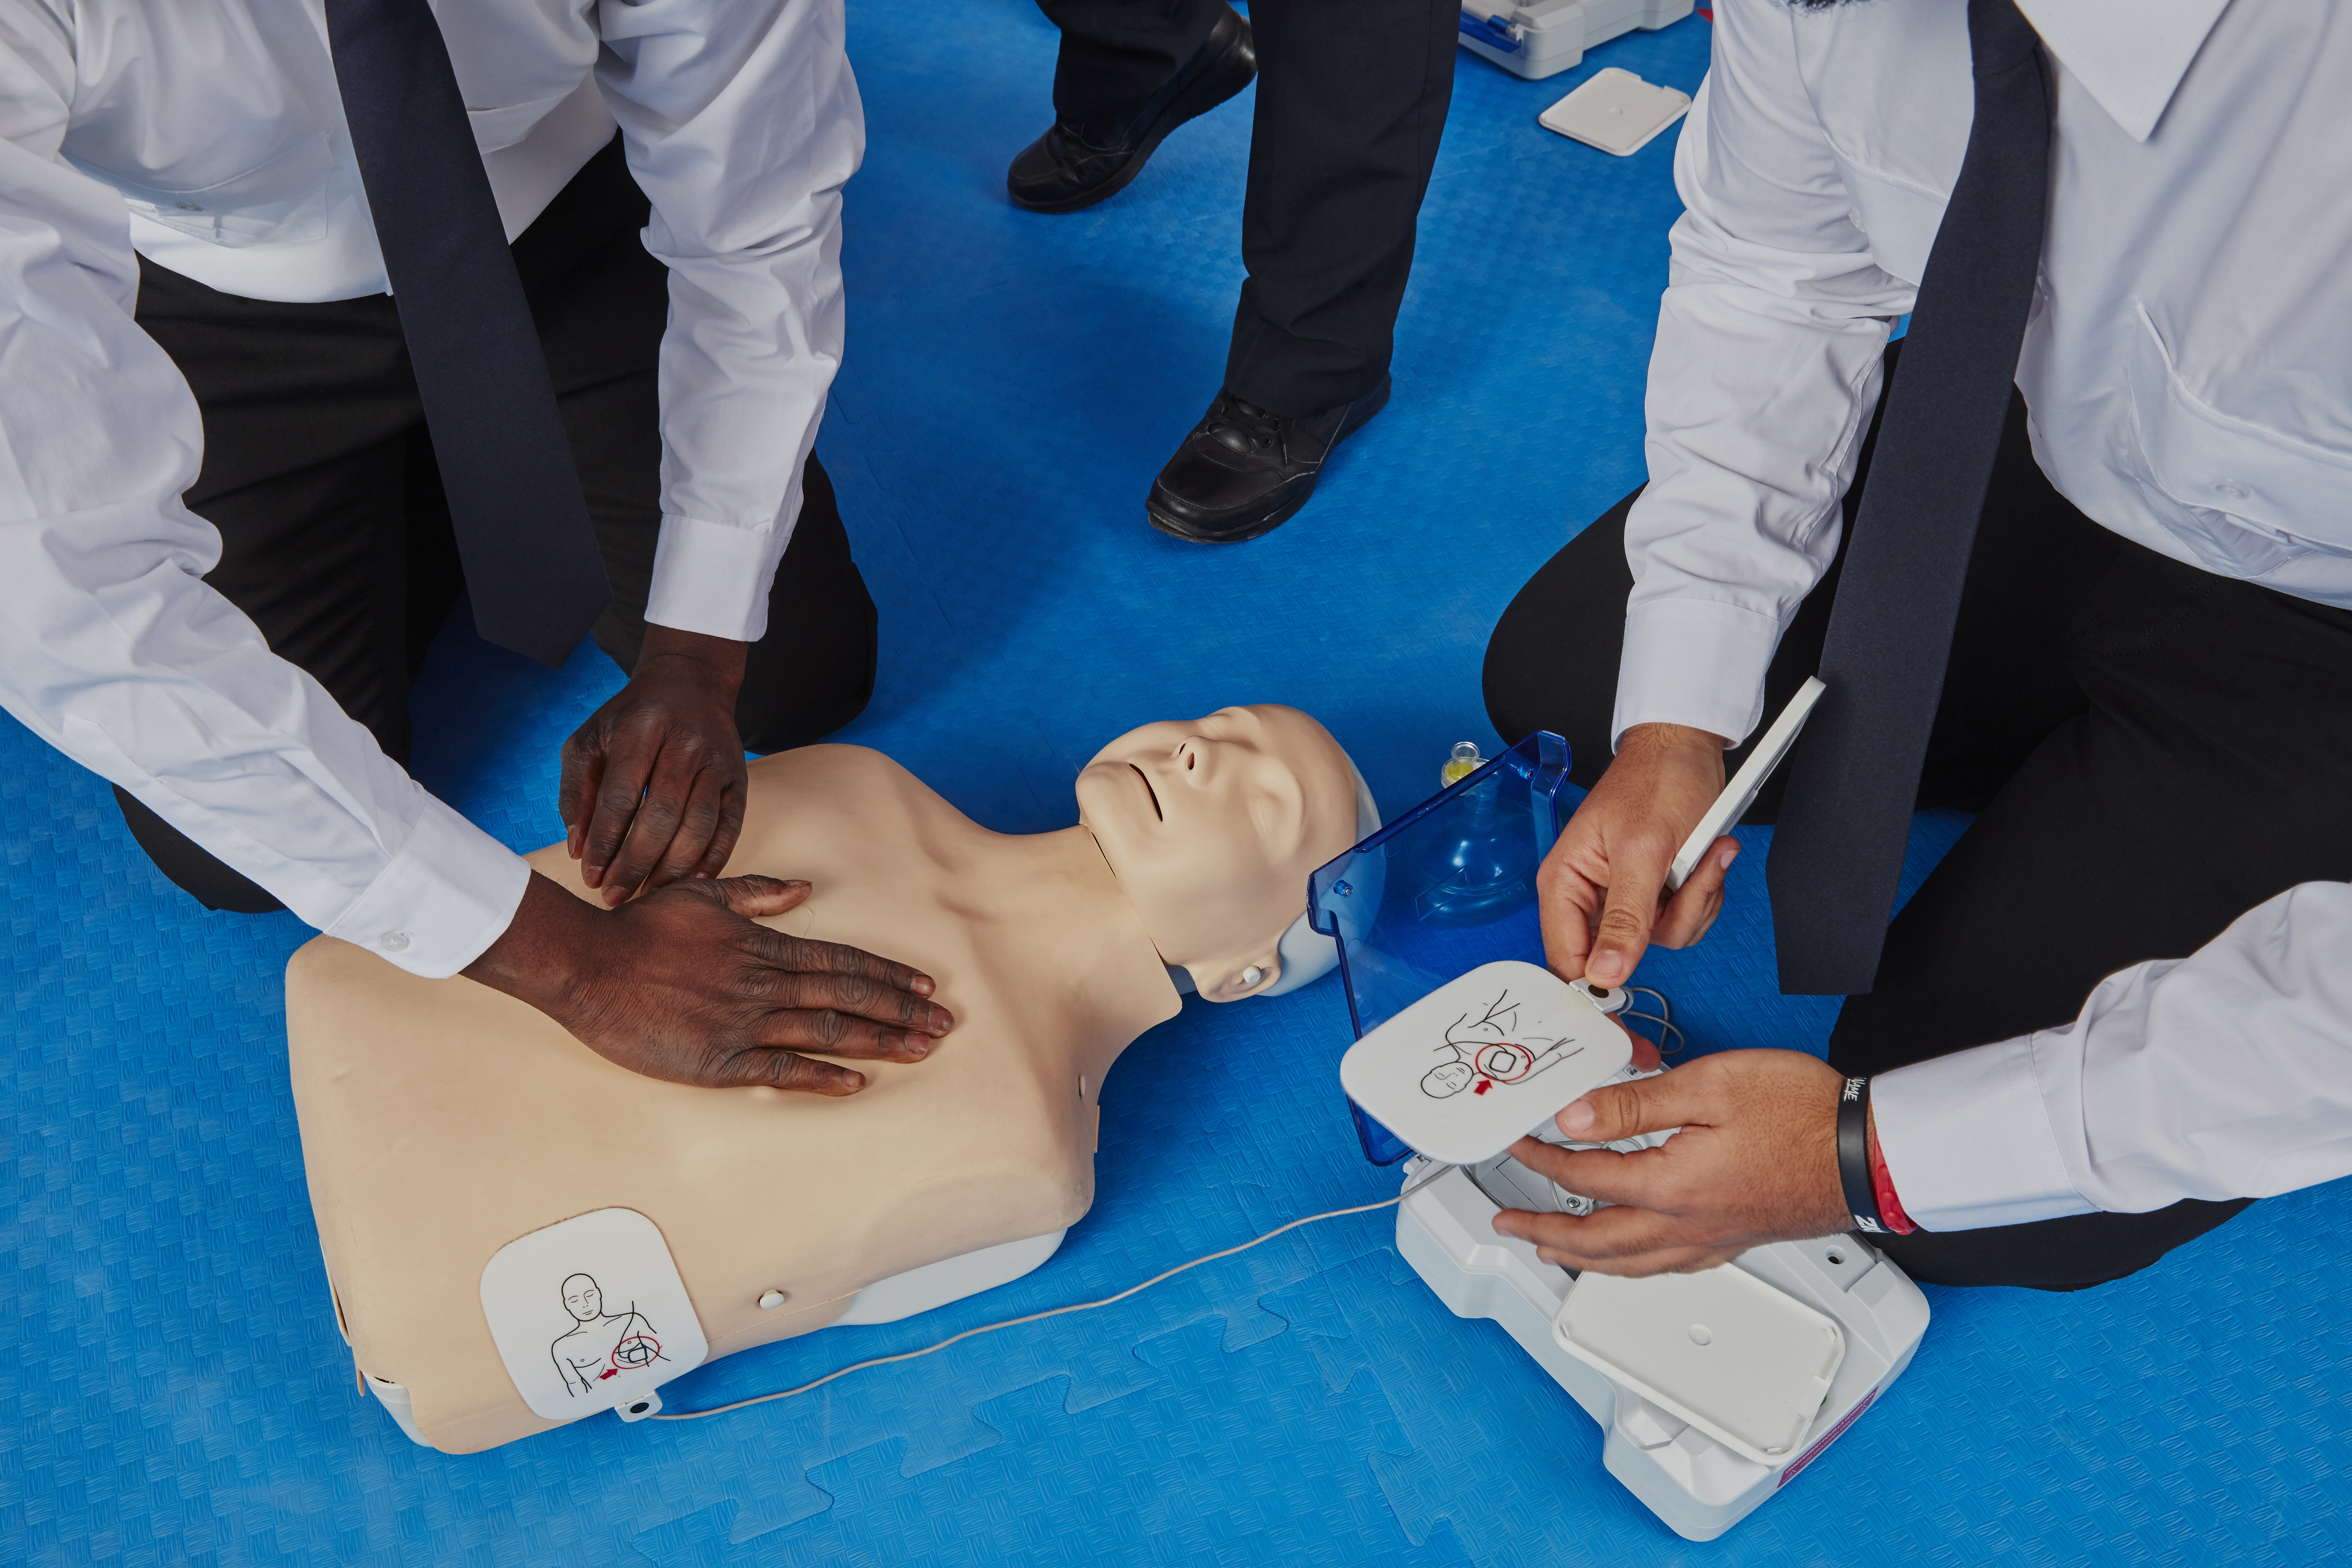 Security Guard students in a First Aid Training Class